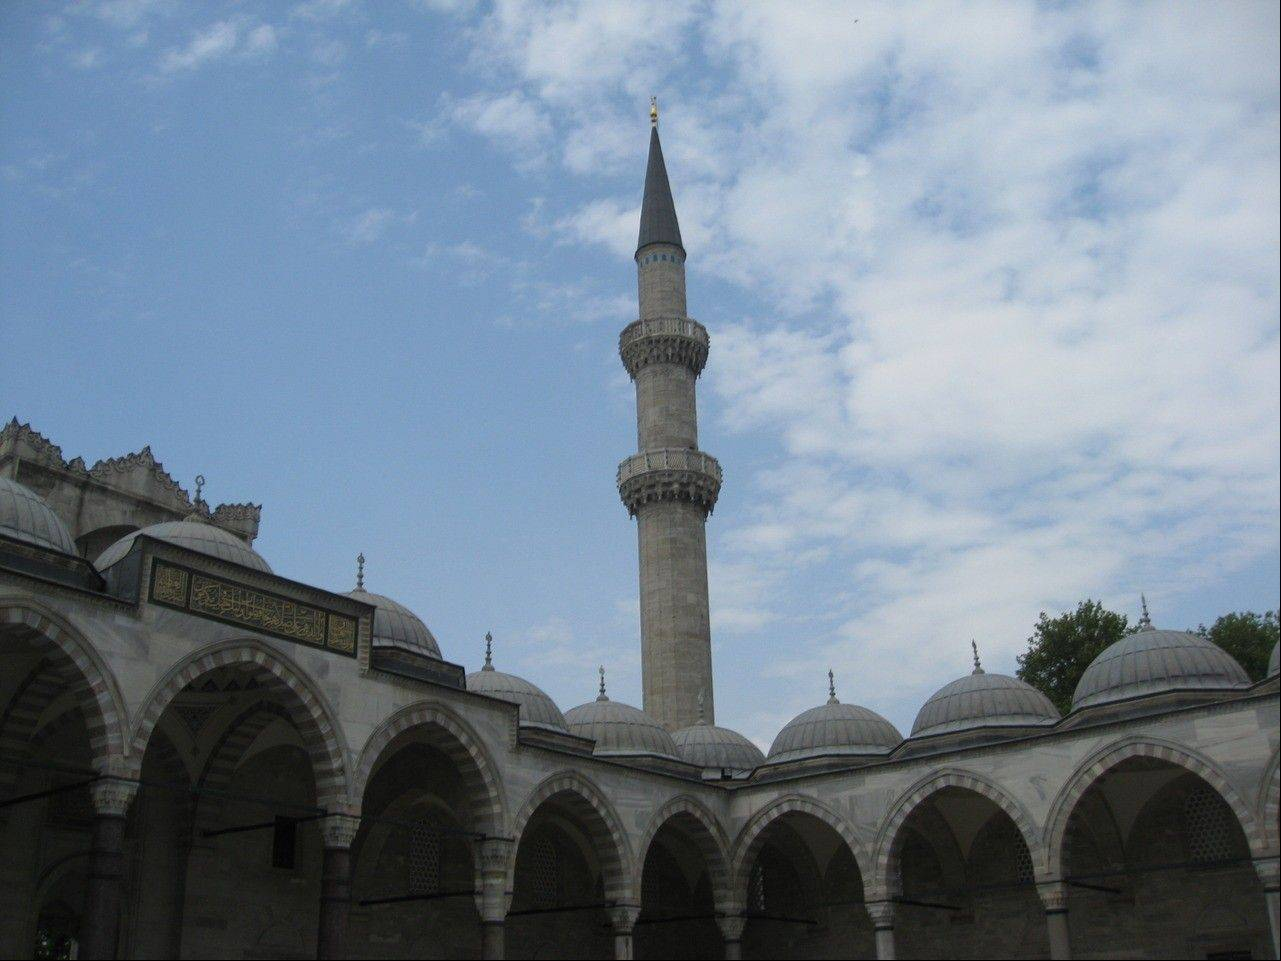 U-46 teacher Chris LaRue traveled through Turkey this summer and created a lesson about sacred spaces like Suleymaniye Mosque, pictured here. Her advanced placement students will learn more about Turkey this year, thanks to her trip.